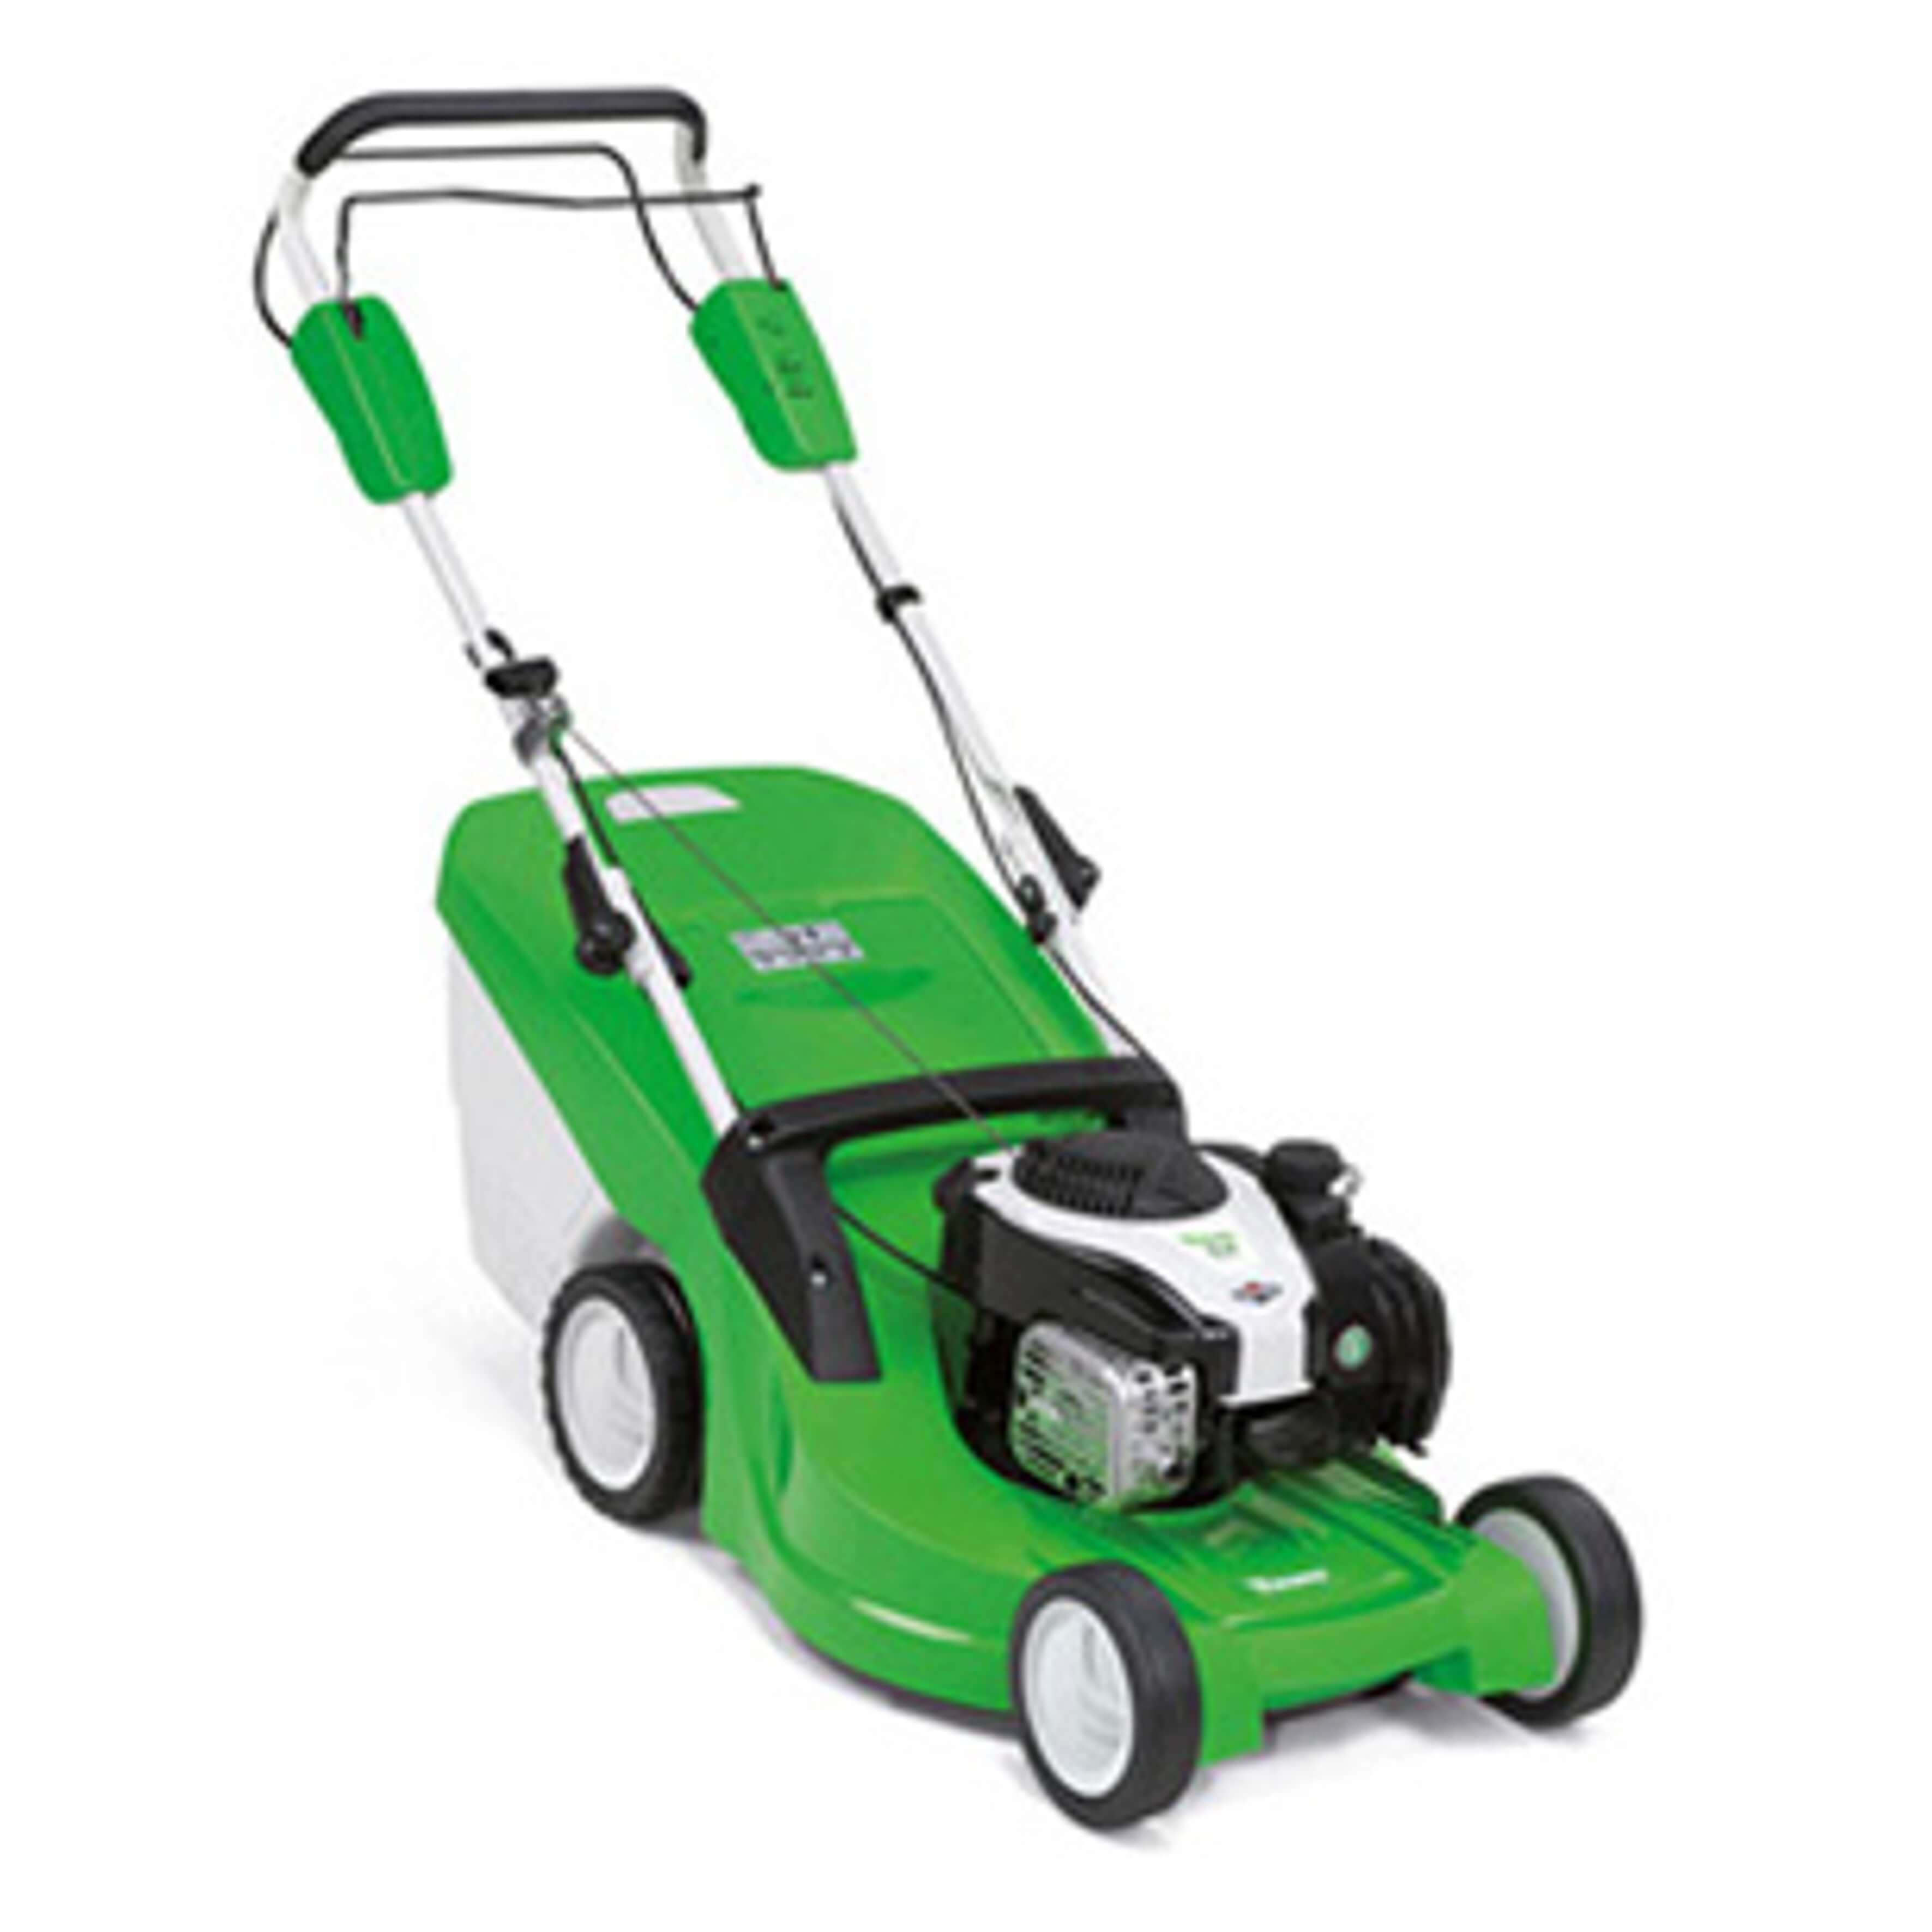 Viking MB 450 X Petrol Lawn Mowers